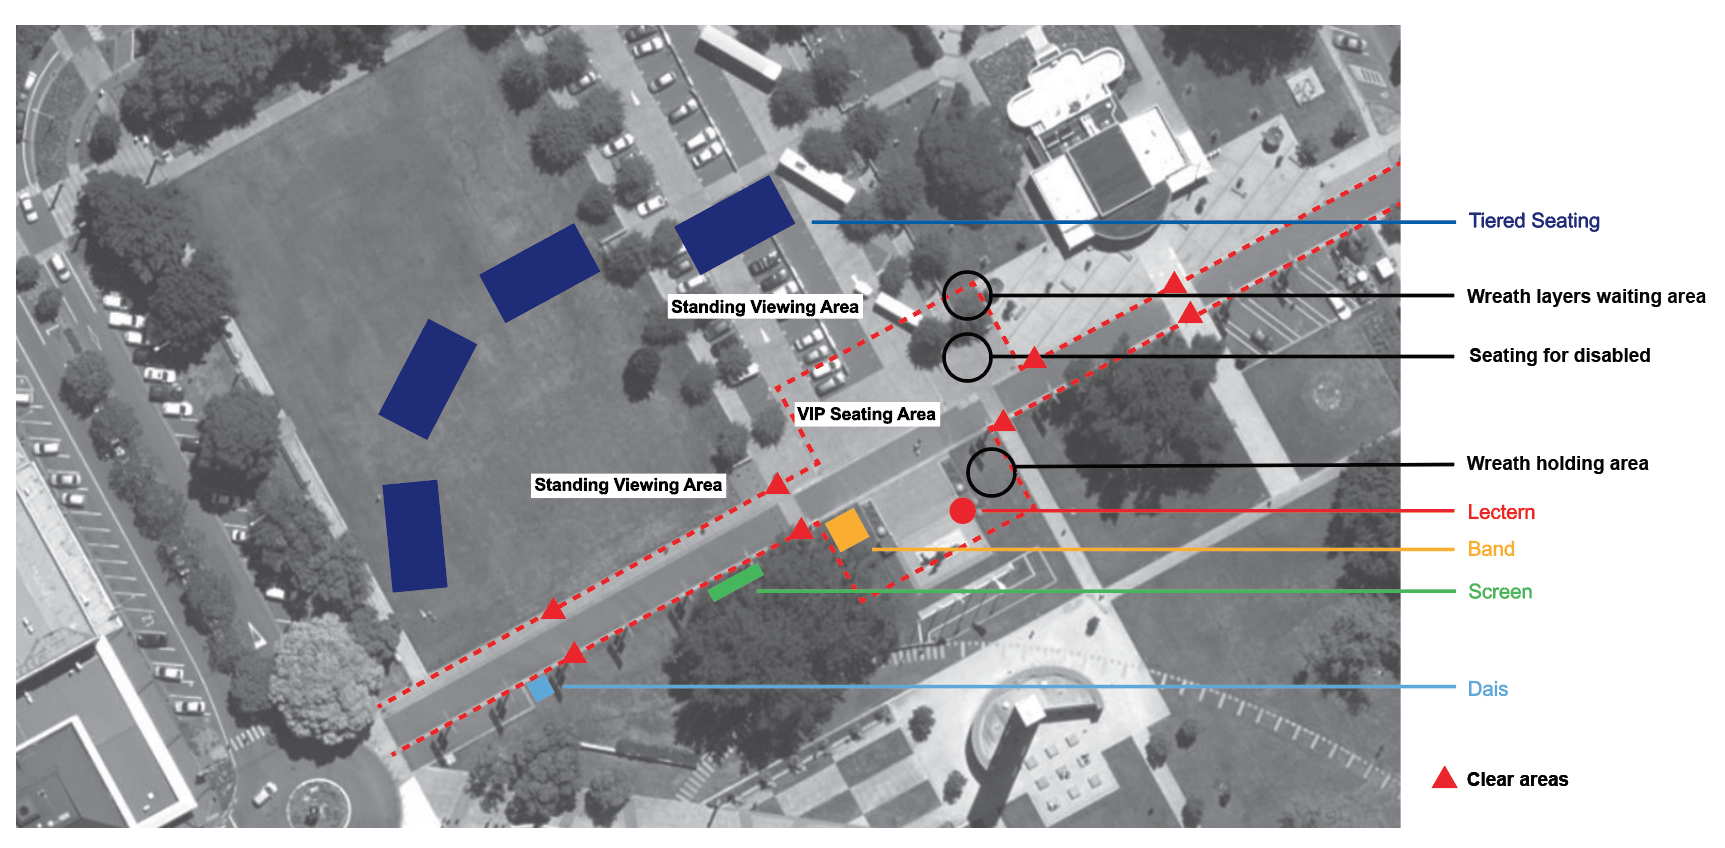 Layout of the Square for ANZAC Day 2016. Click on the map to enlarge